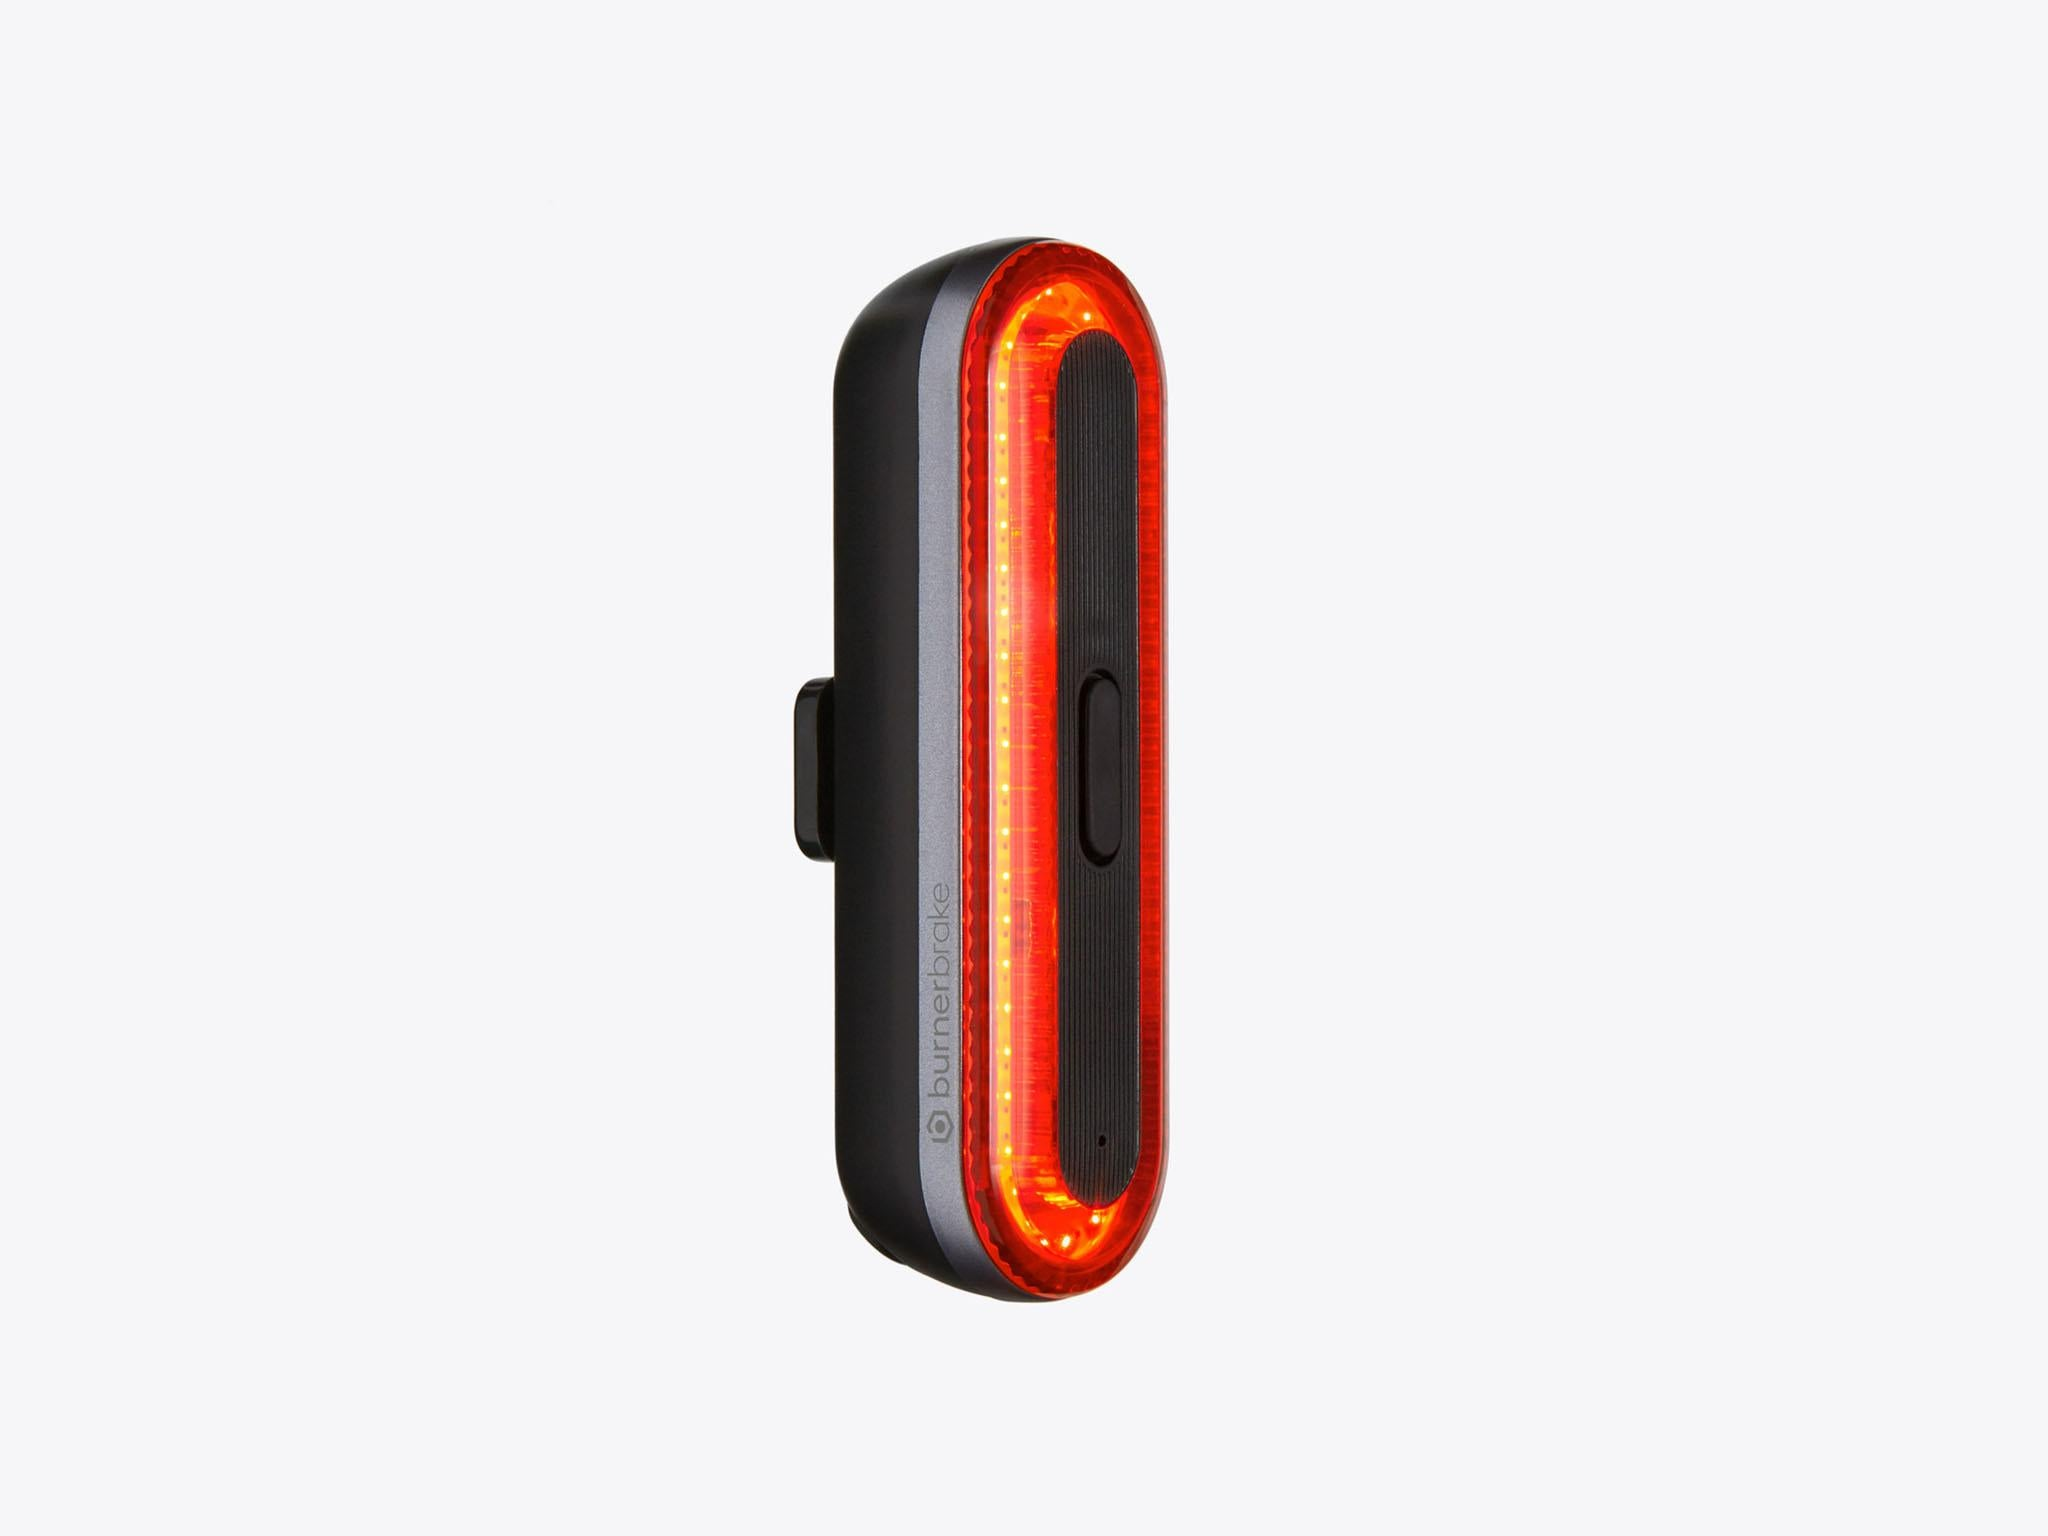 MINISTAR 4 Models USB Rechargeable Bike Tail Light Powerful LED Bicycle Rear Light Super Bright and Easy Install Red Taillight for Optimum Cycling Safety